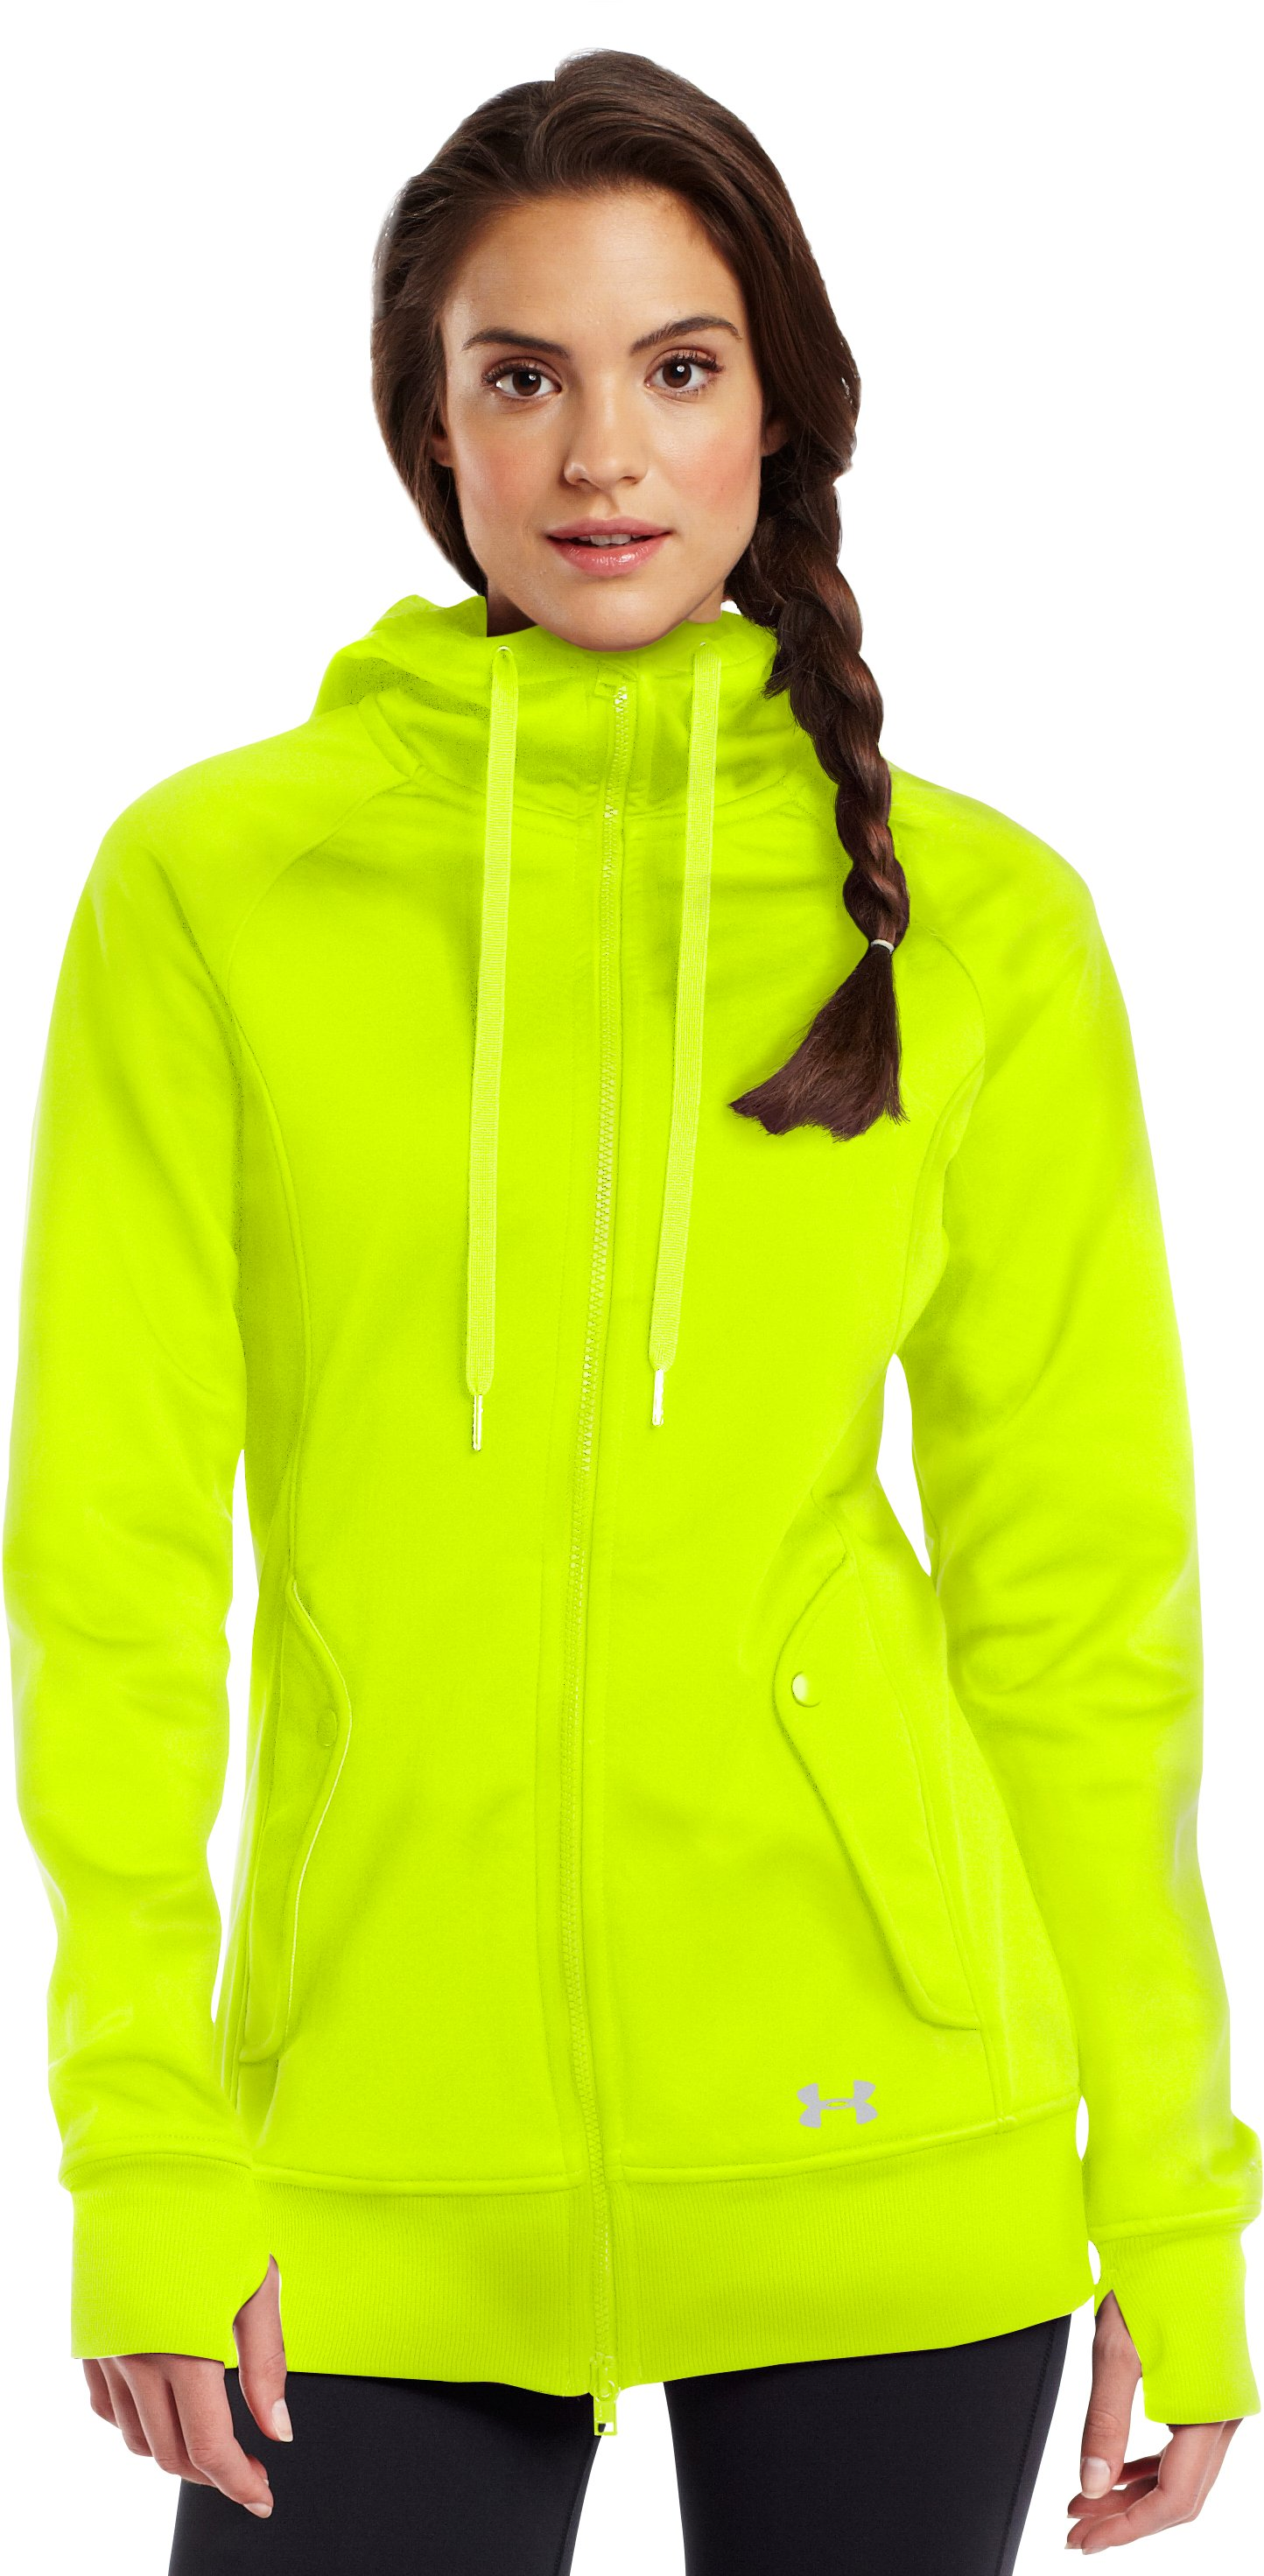 Women's ColdGear® Infrared Softershell, High-Vis Yellow